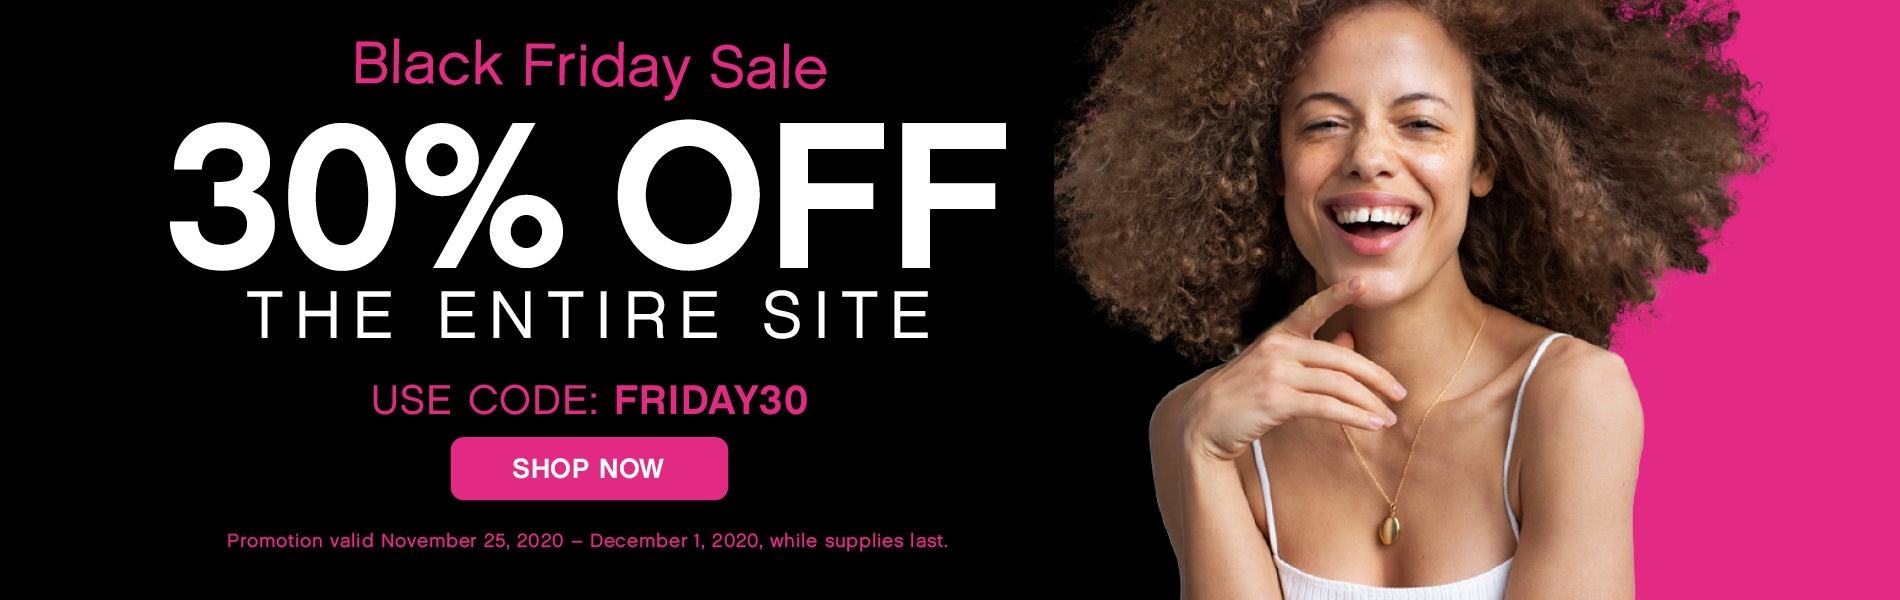 Black Friday Sale! Take 30% OFF Sitewide. Use Code: FRIDAY30. Shop Now!